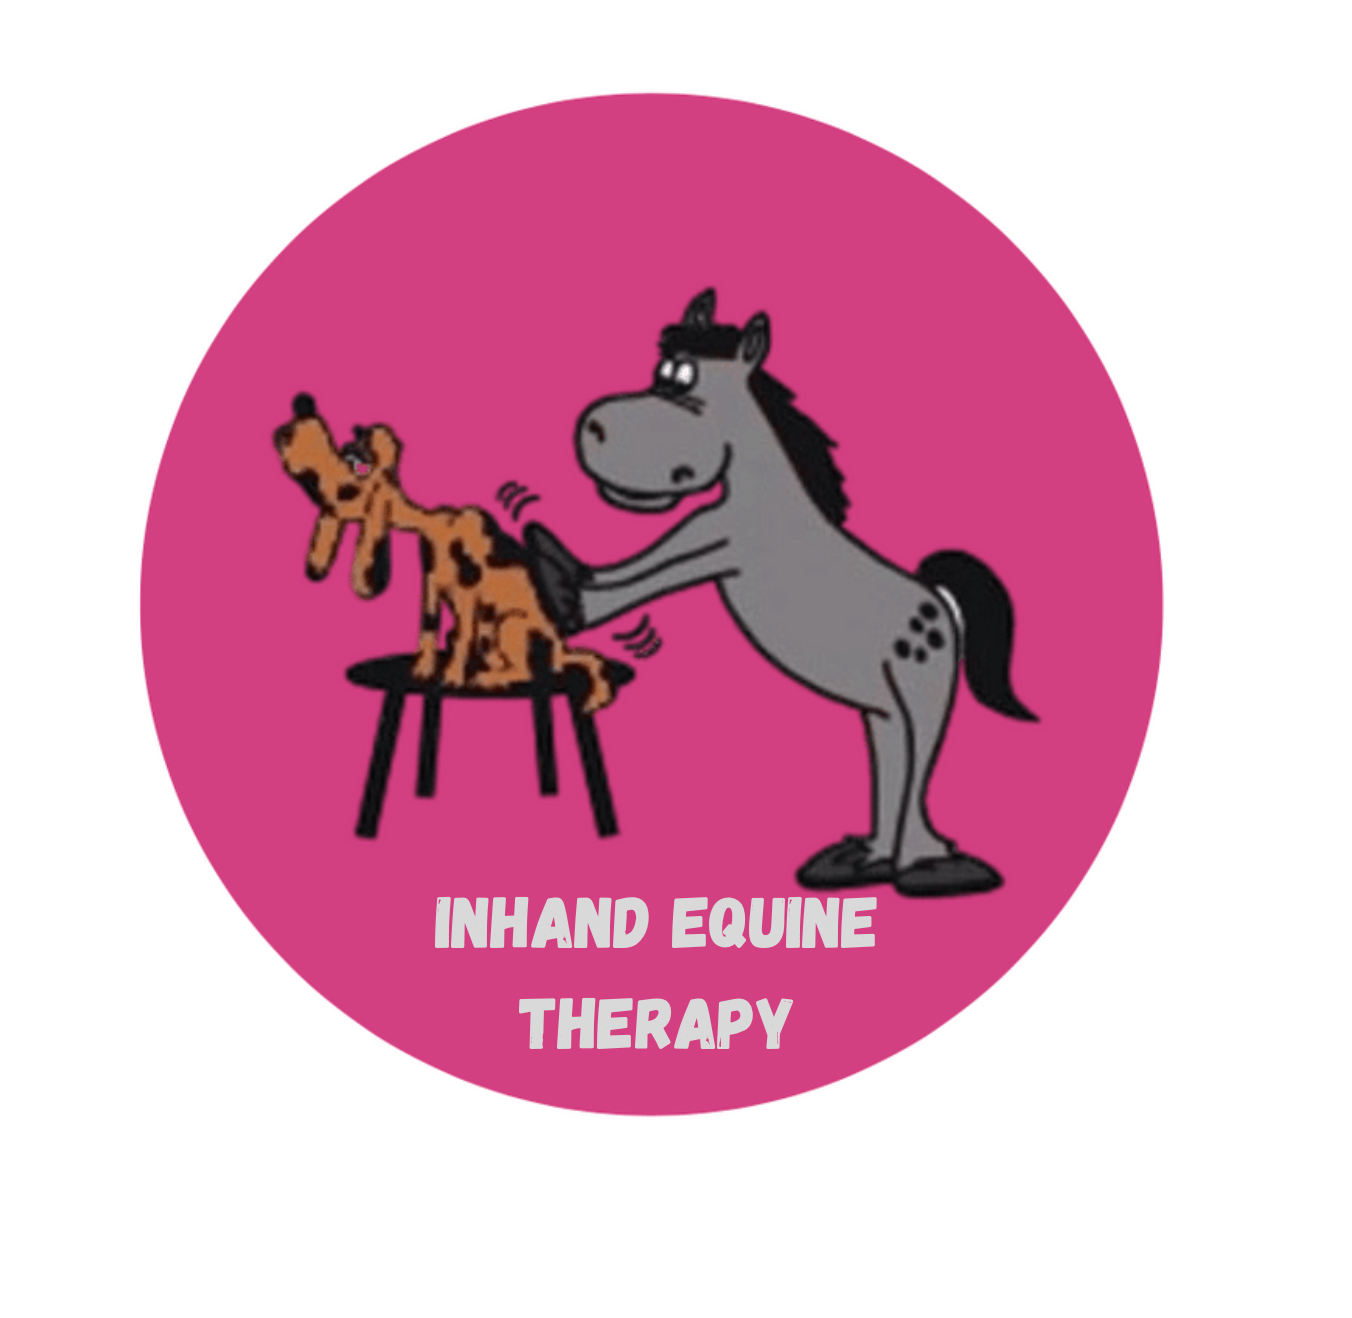 Inhand Equine Therapy